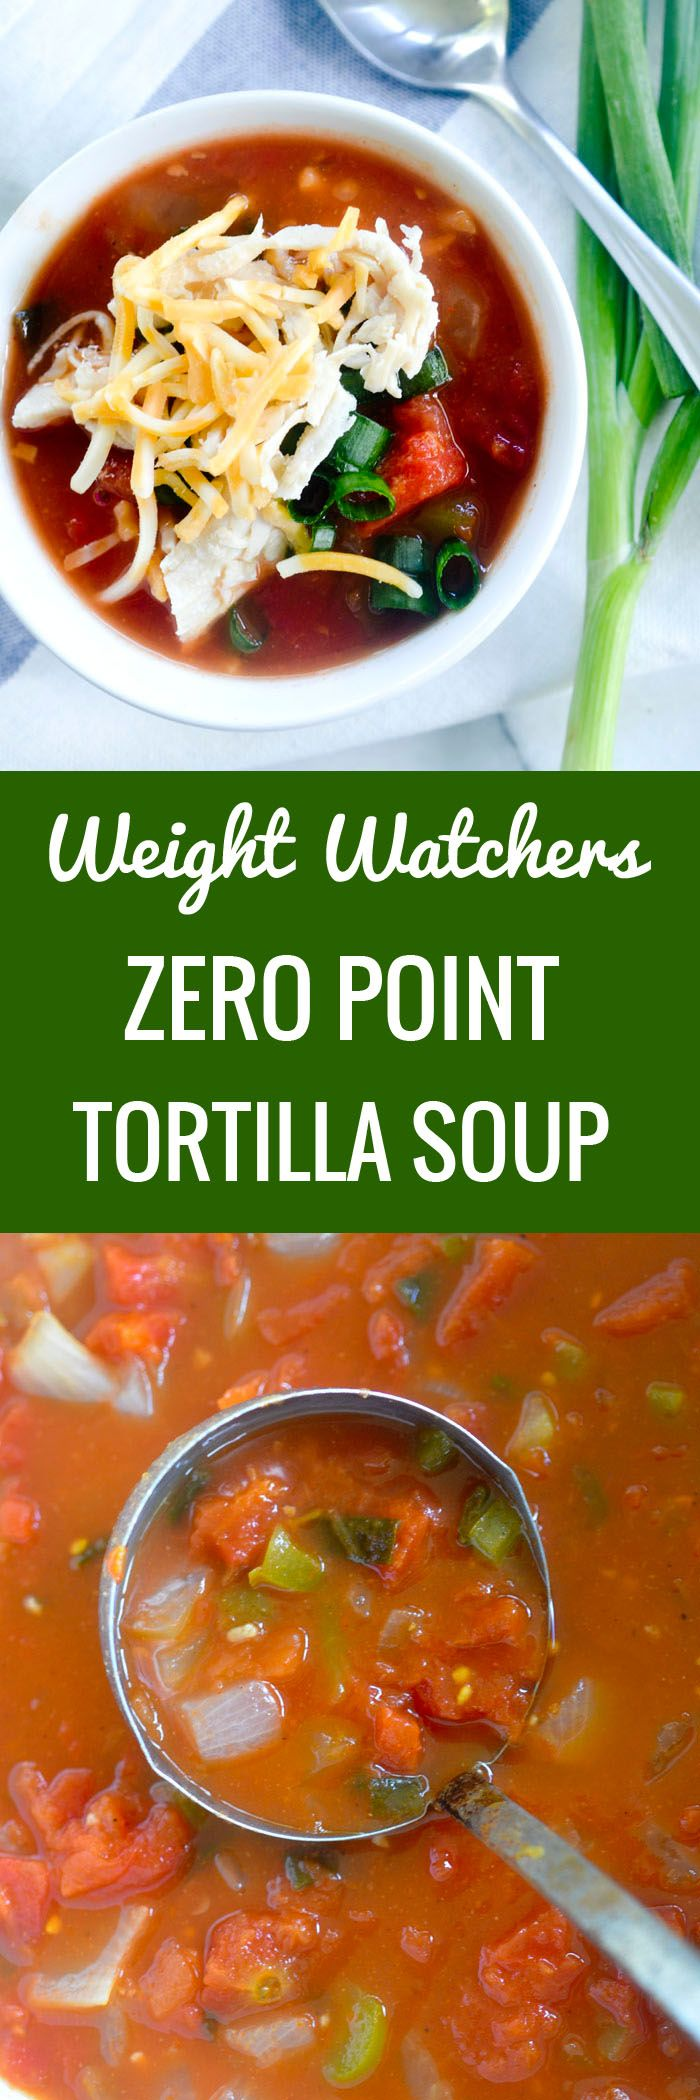 Weight Watchers Zero Point Tortilla Soup - Recipe Diaries